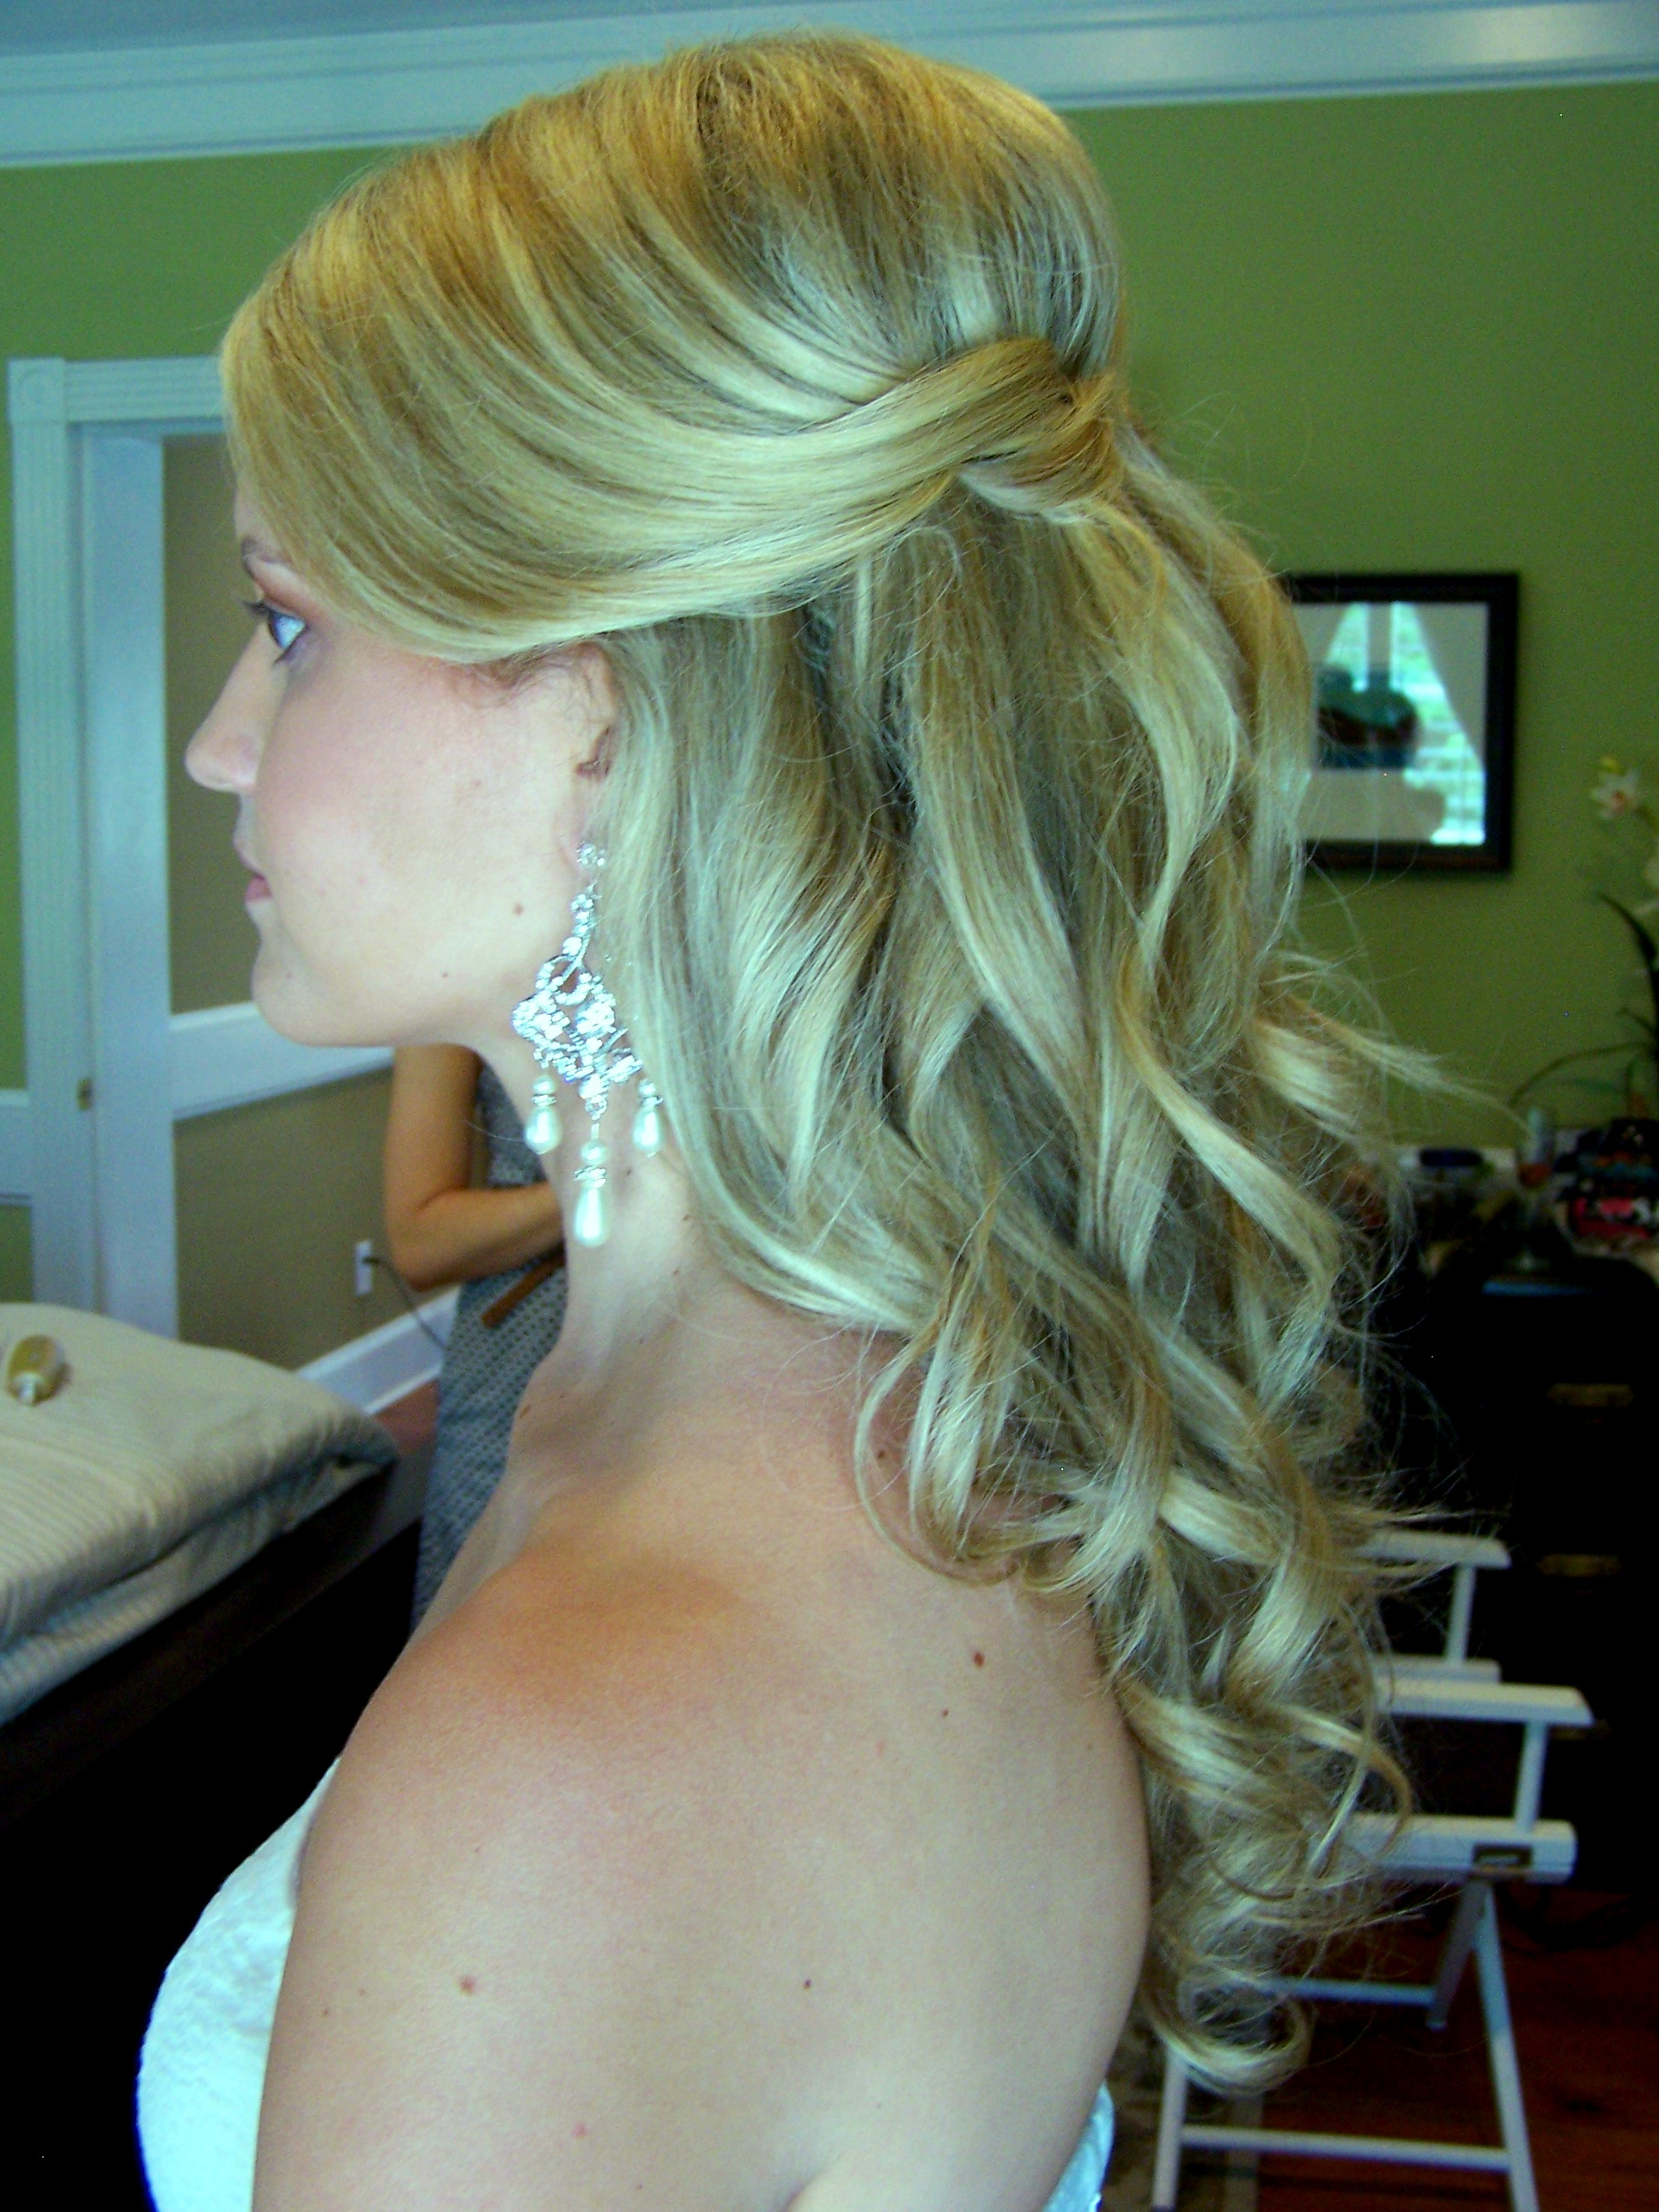 Well Liked Curly Wedding Updos With A Bouffant Intended For Pleasing Loose Curly Updo Wedding Hairstyles With Additional Half (Gallery 2 of 20)